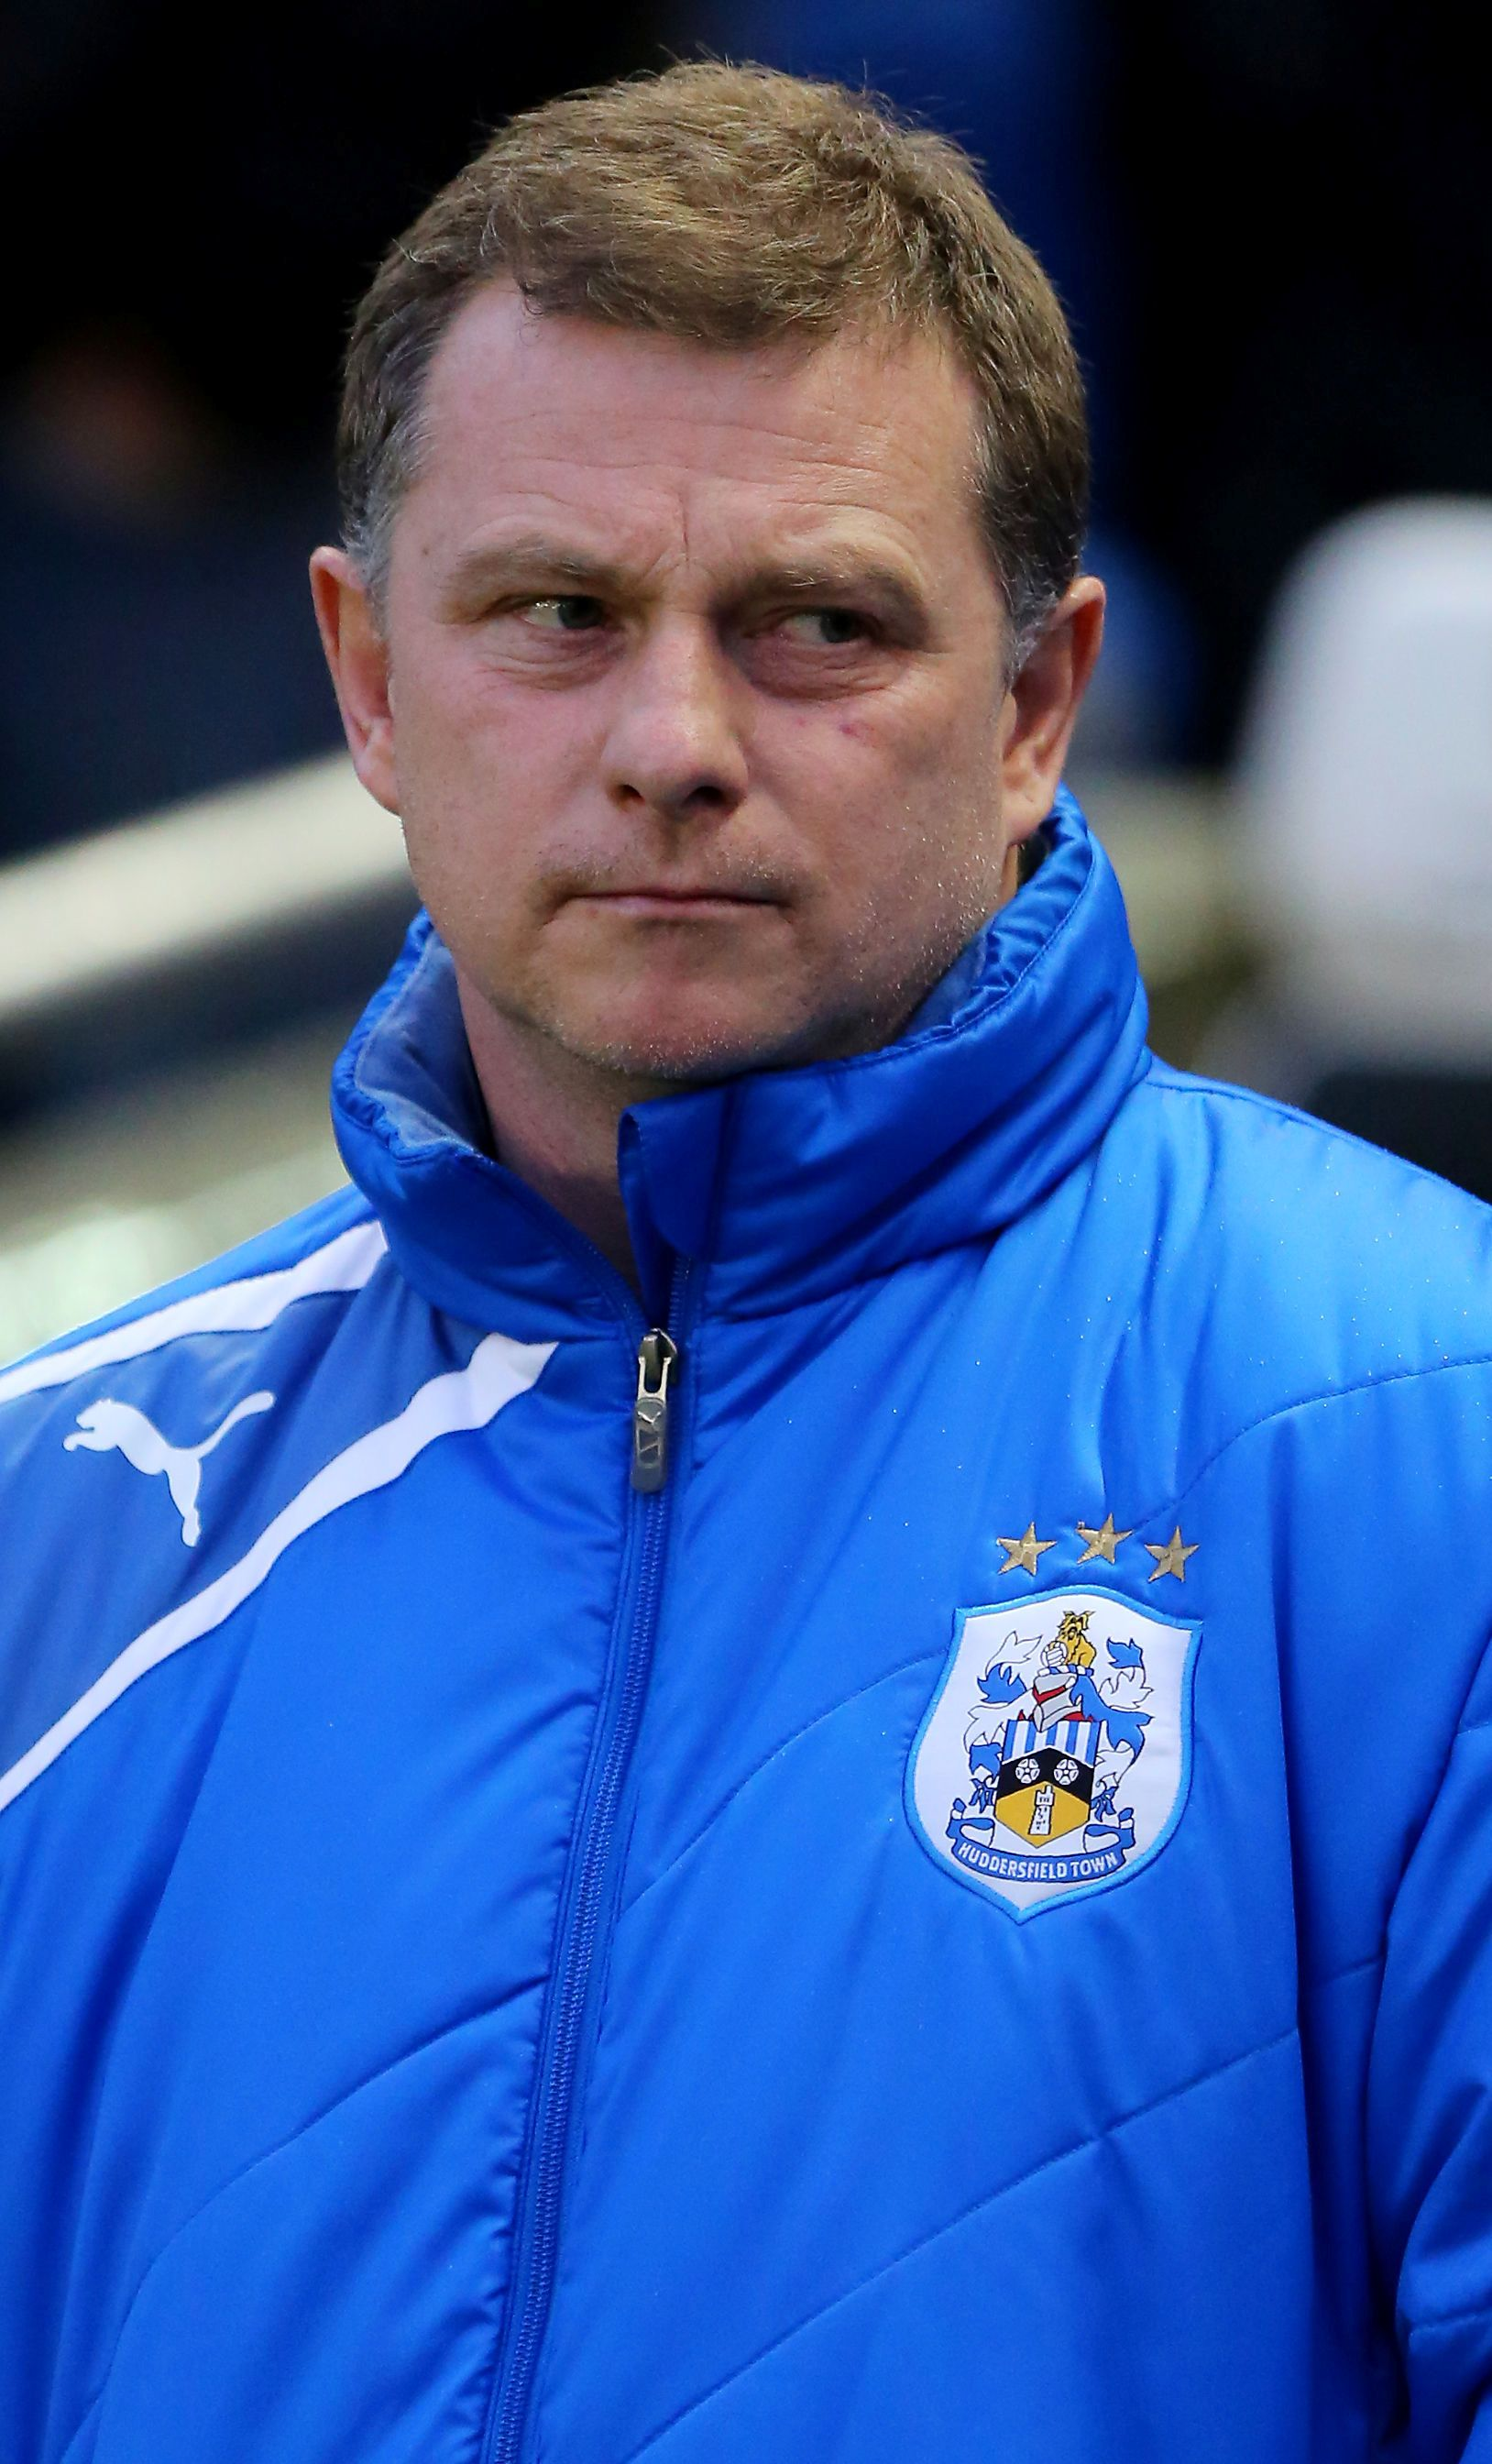 Huddersfield boss Mark Robins has made three enforced team changes